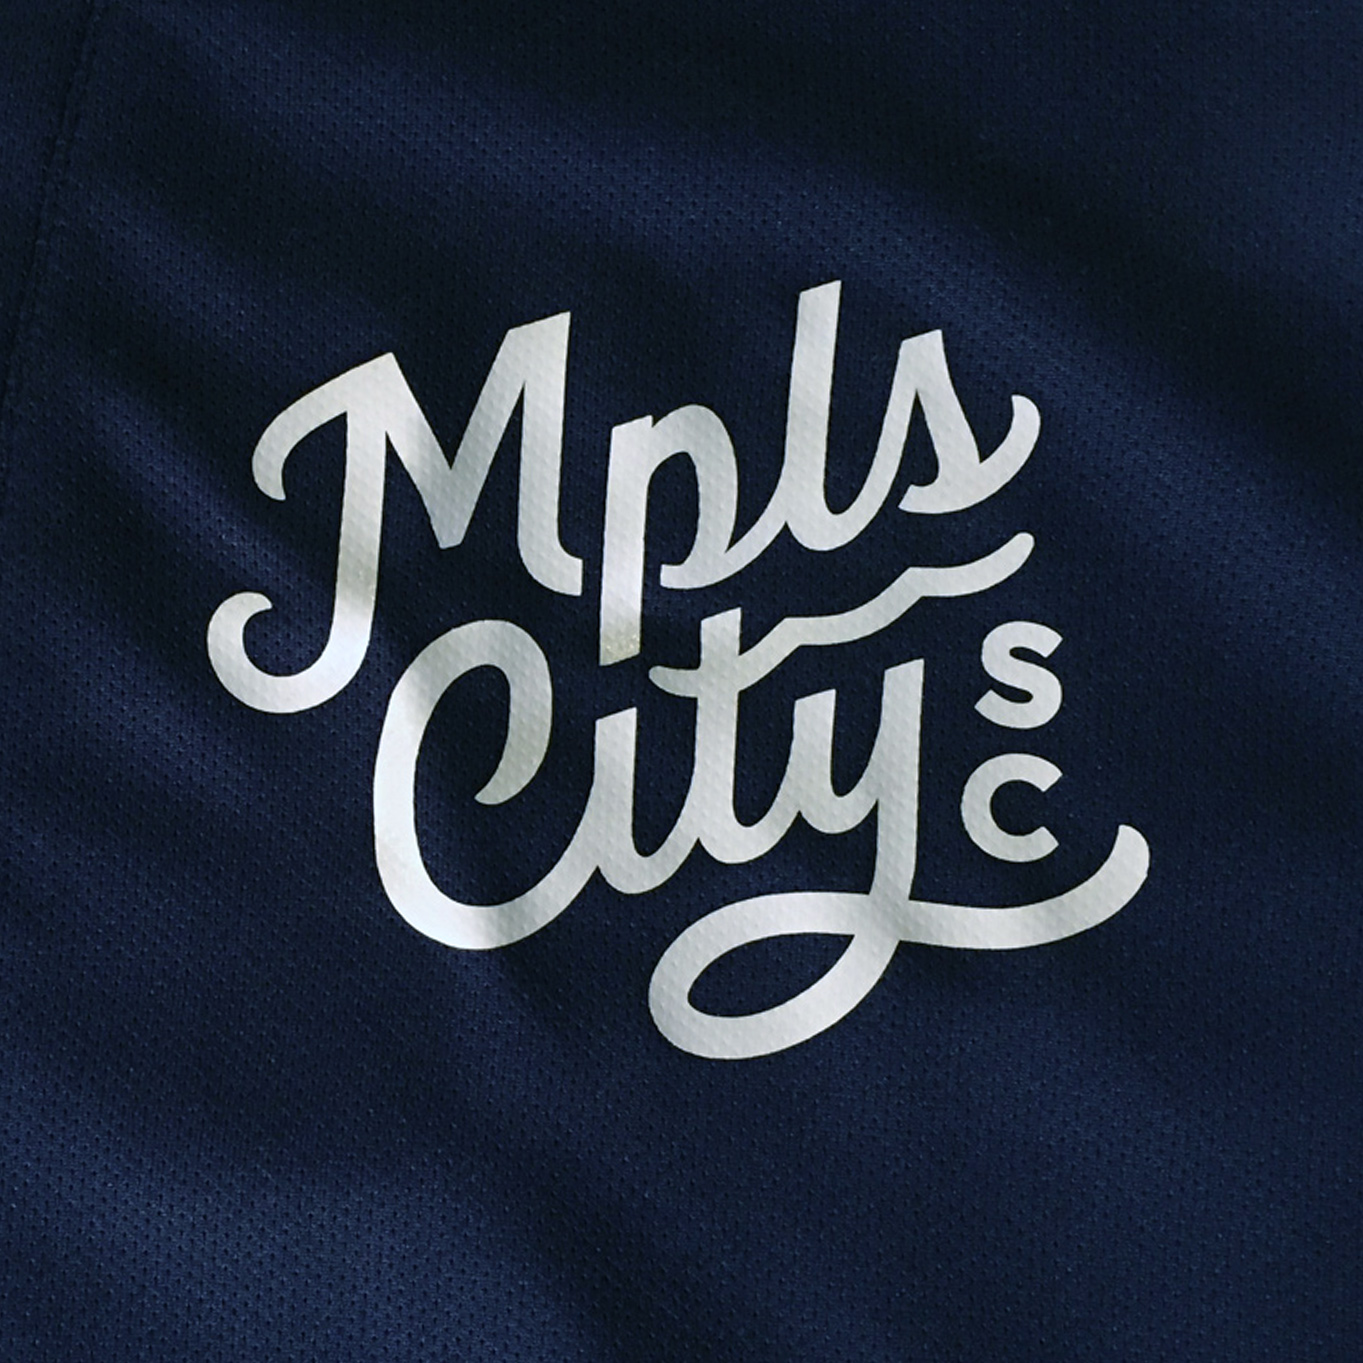 Minnesota, Minneapolis City SC, MPLS, City, Soccer Club, Throwback, US Open Cup, Crest, Logo, Badge, City of Lakes, Matthew Wolff, Design, Premier League of America, 2016